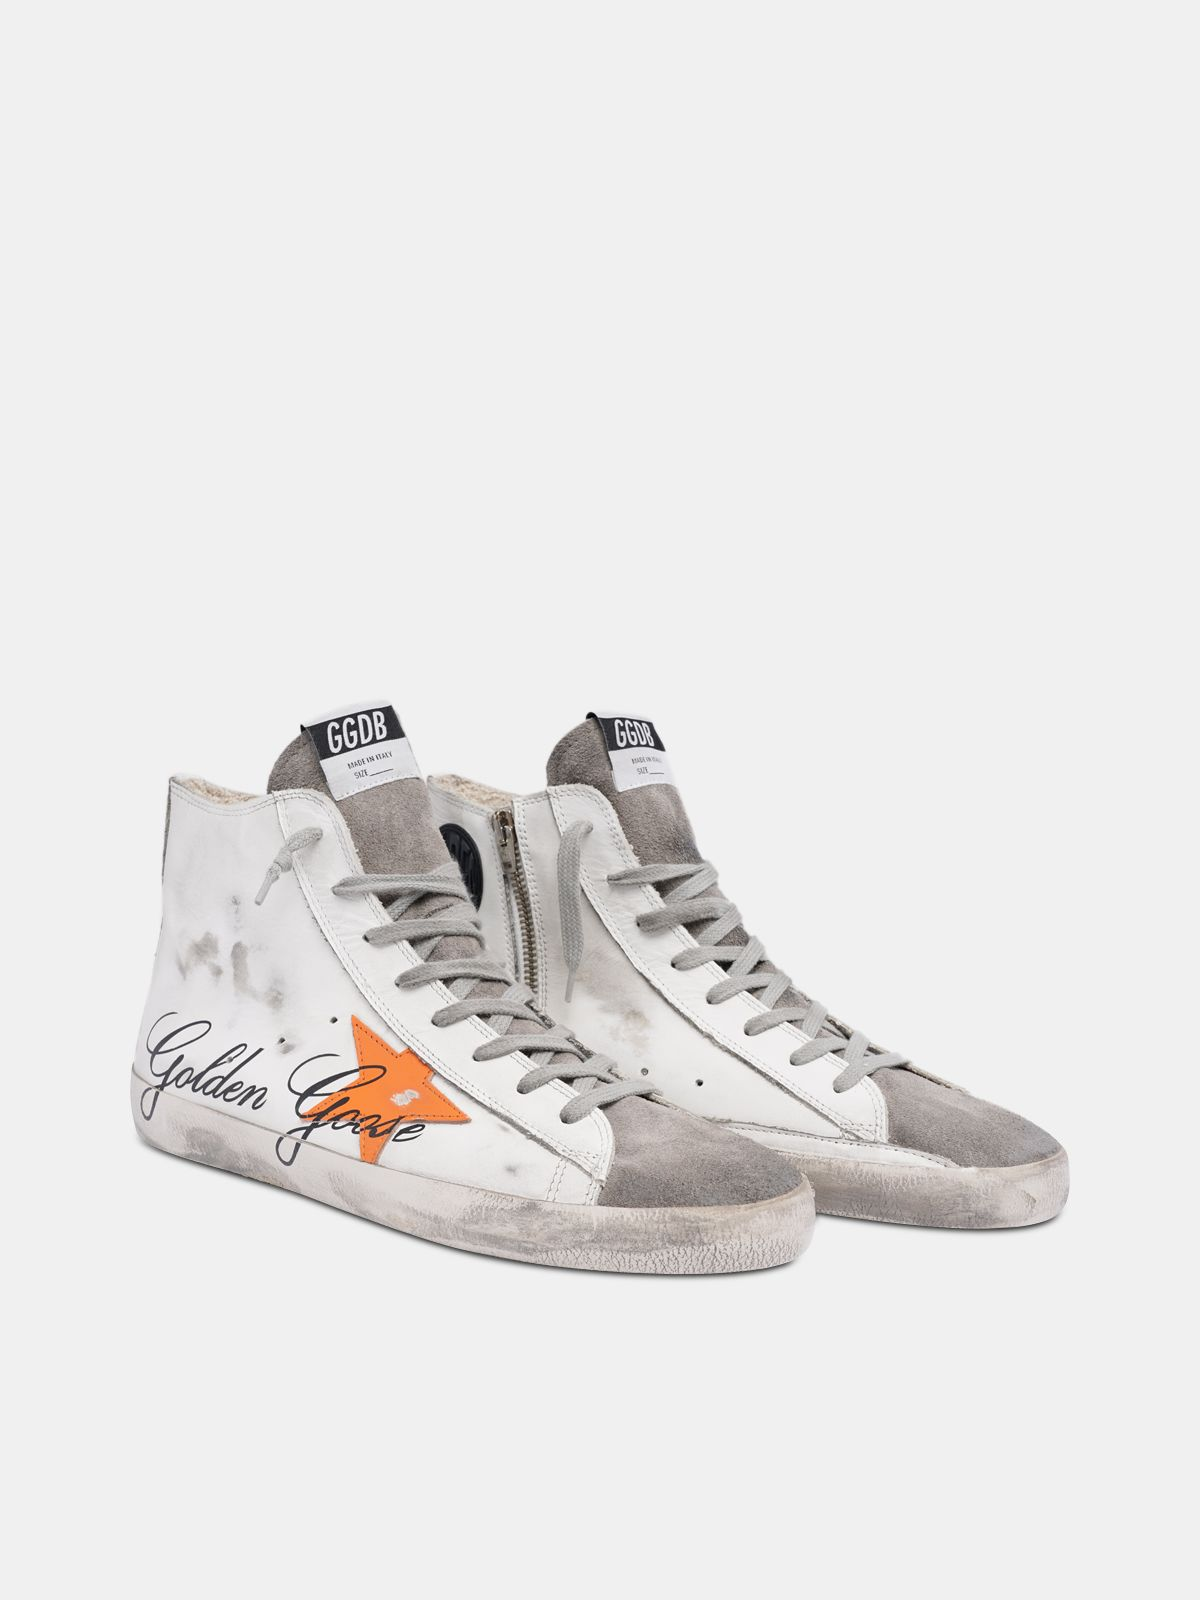 Golden Goose - Sneakers Francy con firma Golden Goose in